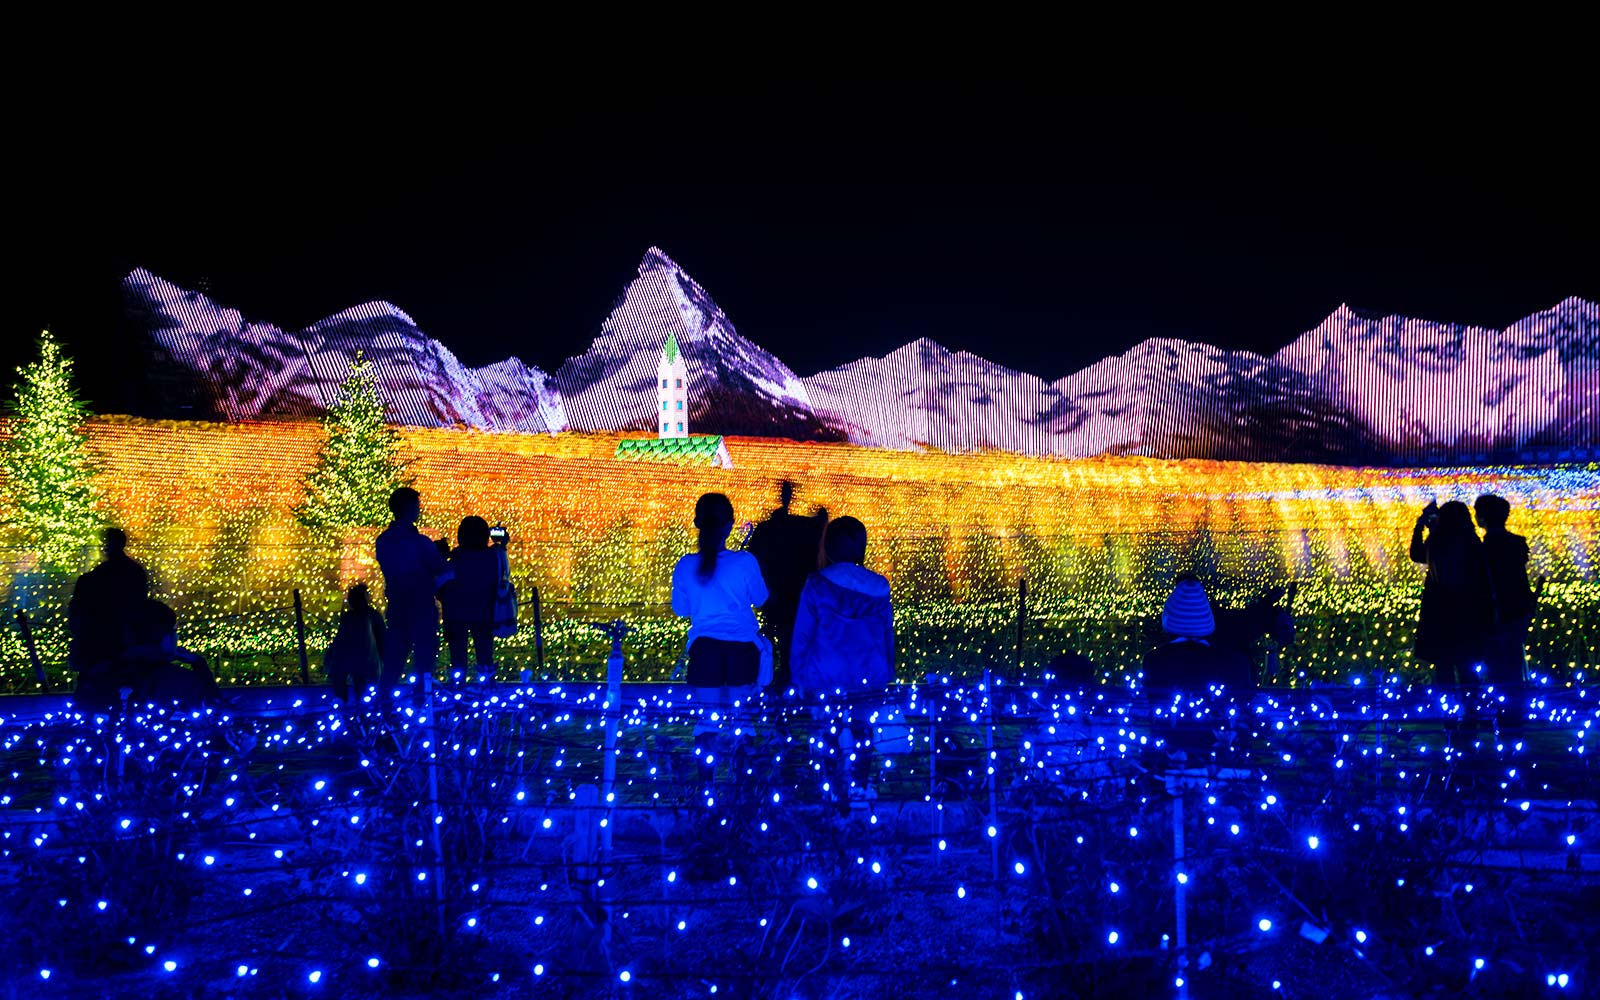 This Dazzling Light Show in a Japanese Flower Garden Is One